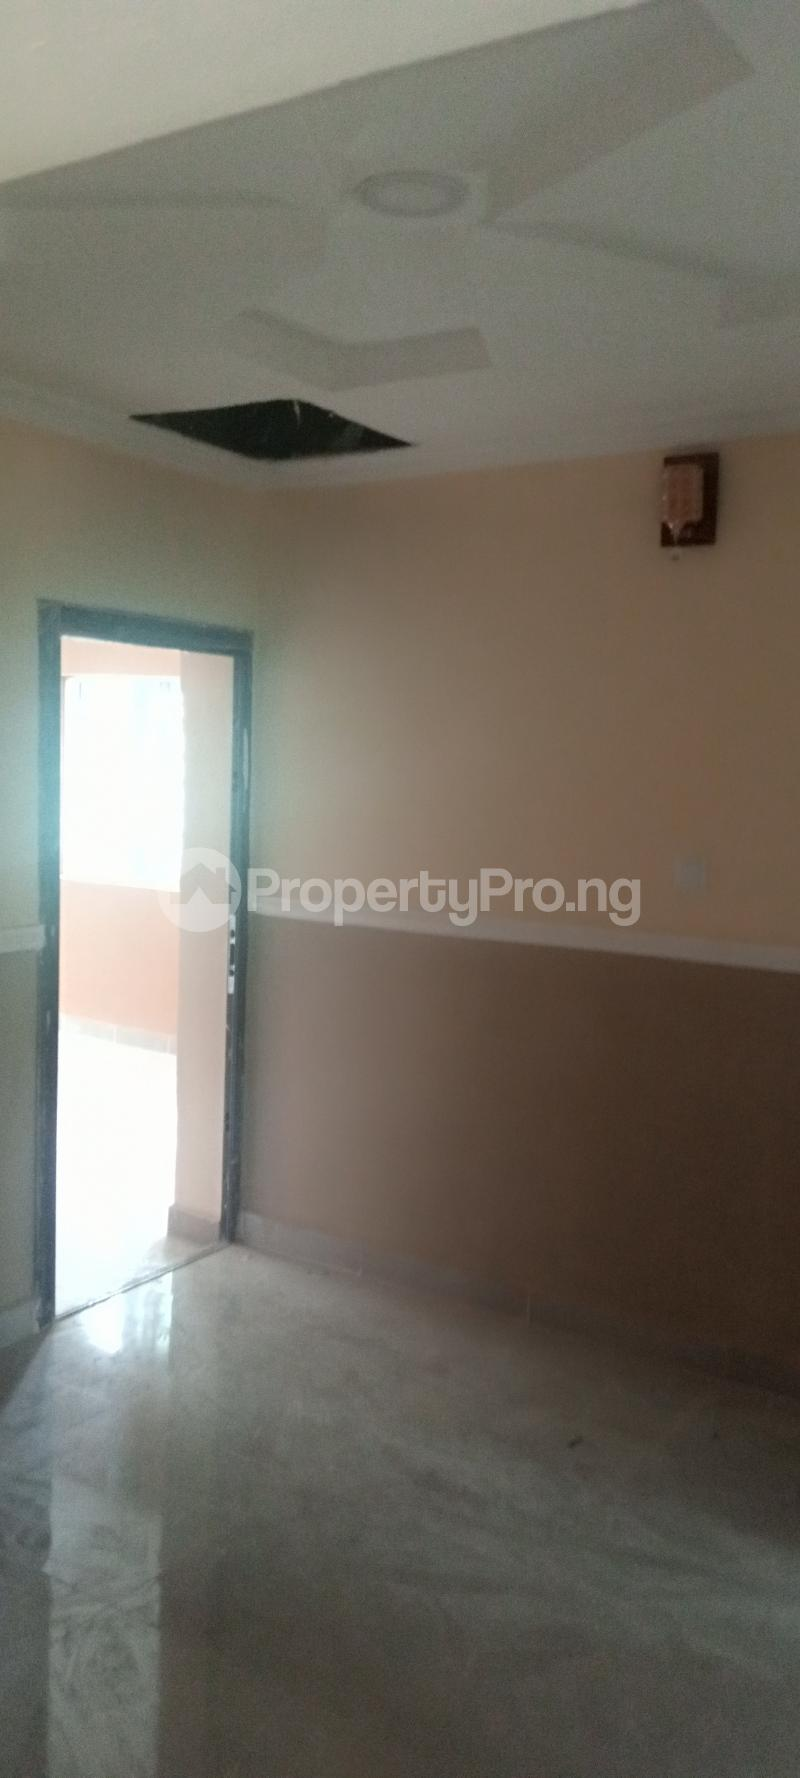 3 bedroom Flat / Apartment for rent A close Oke-Ira Ogba Lagos - 16